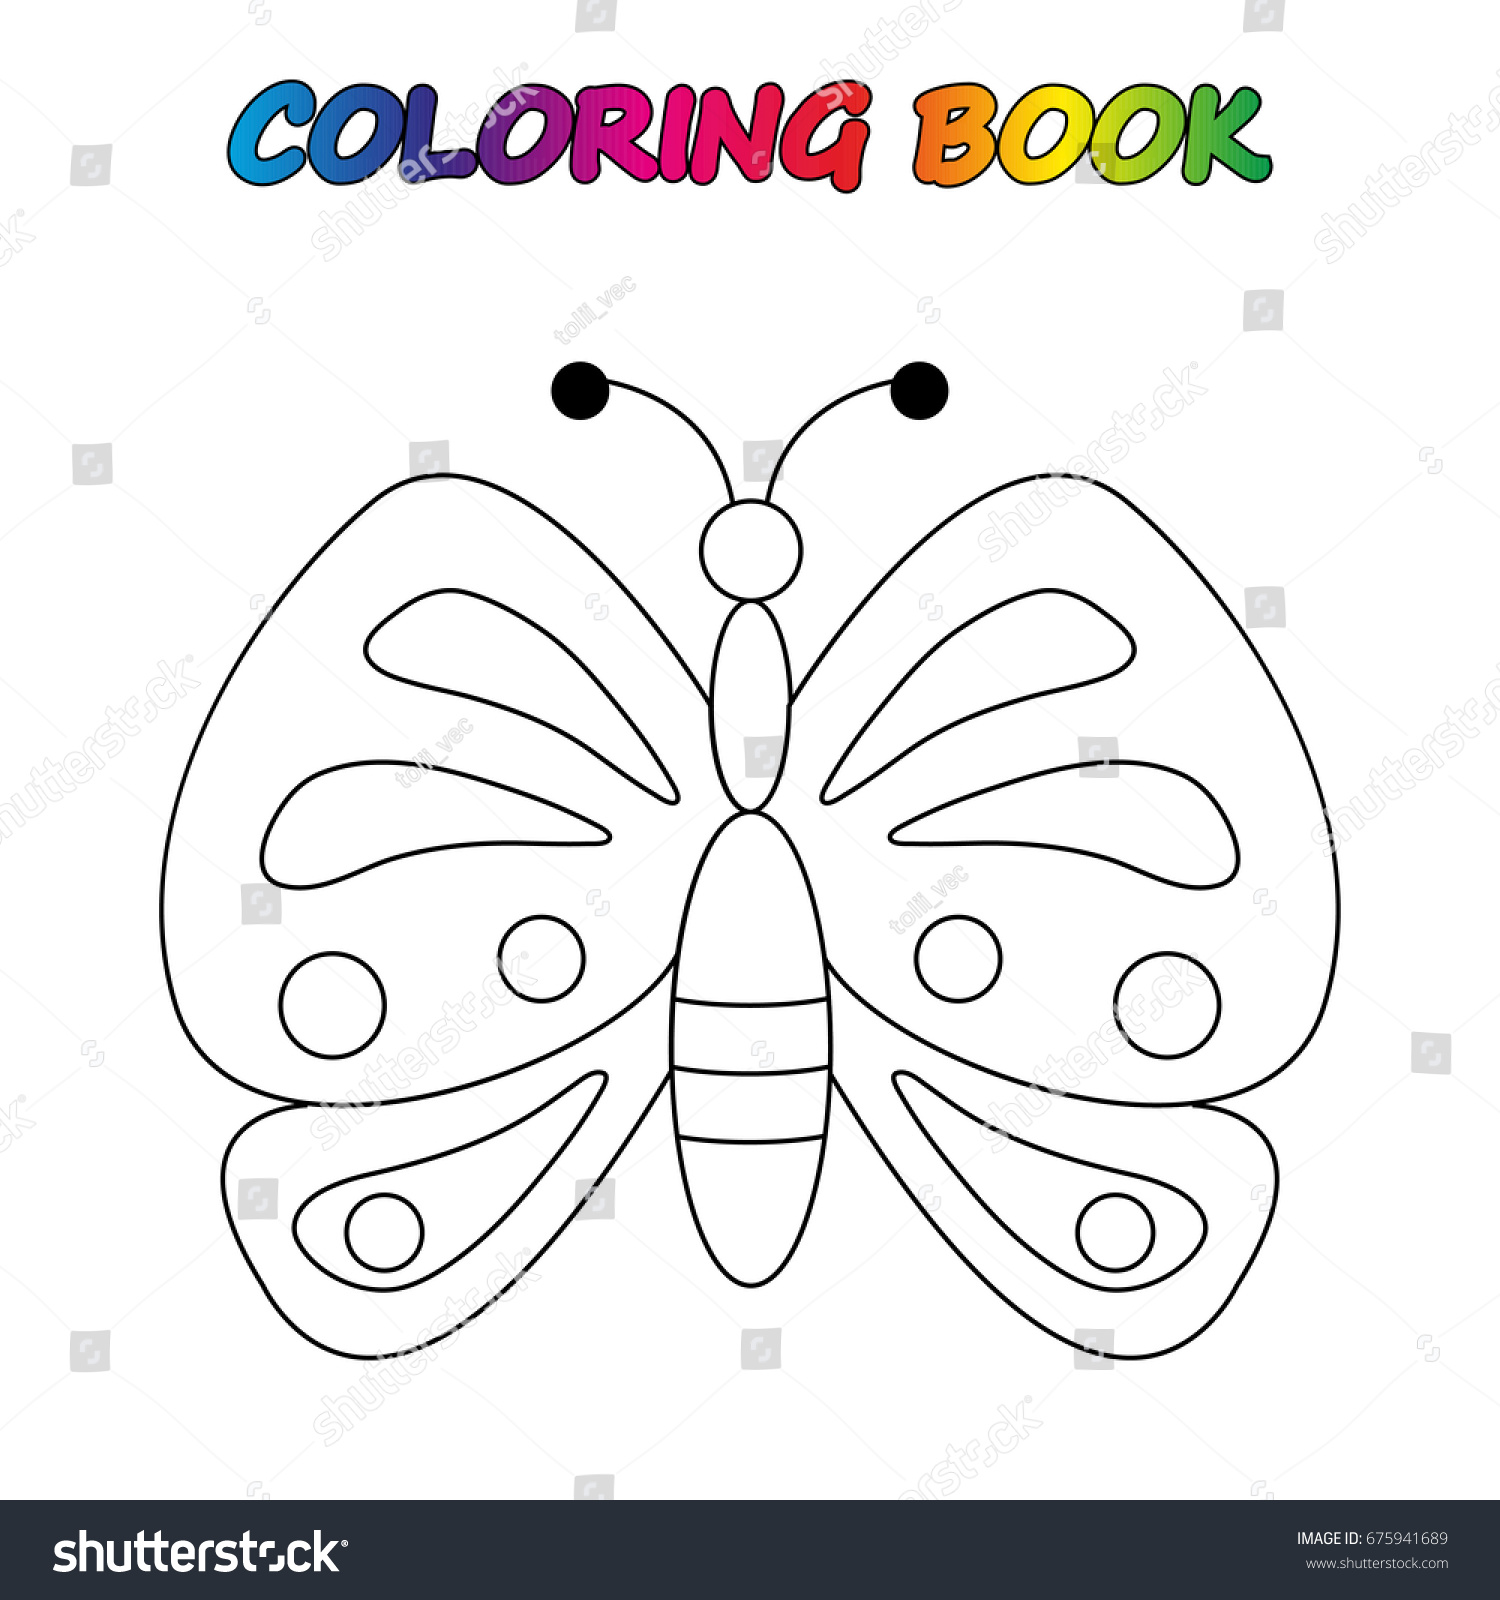 butterfly coloring book game kids vector stock vector 675941689